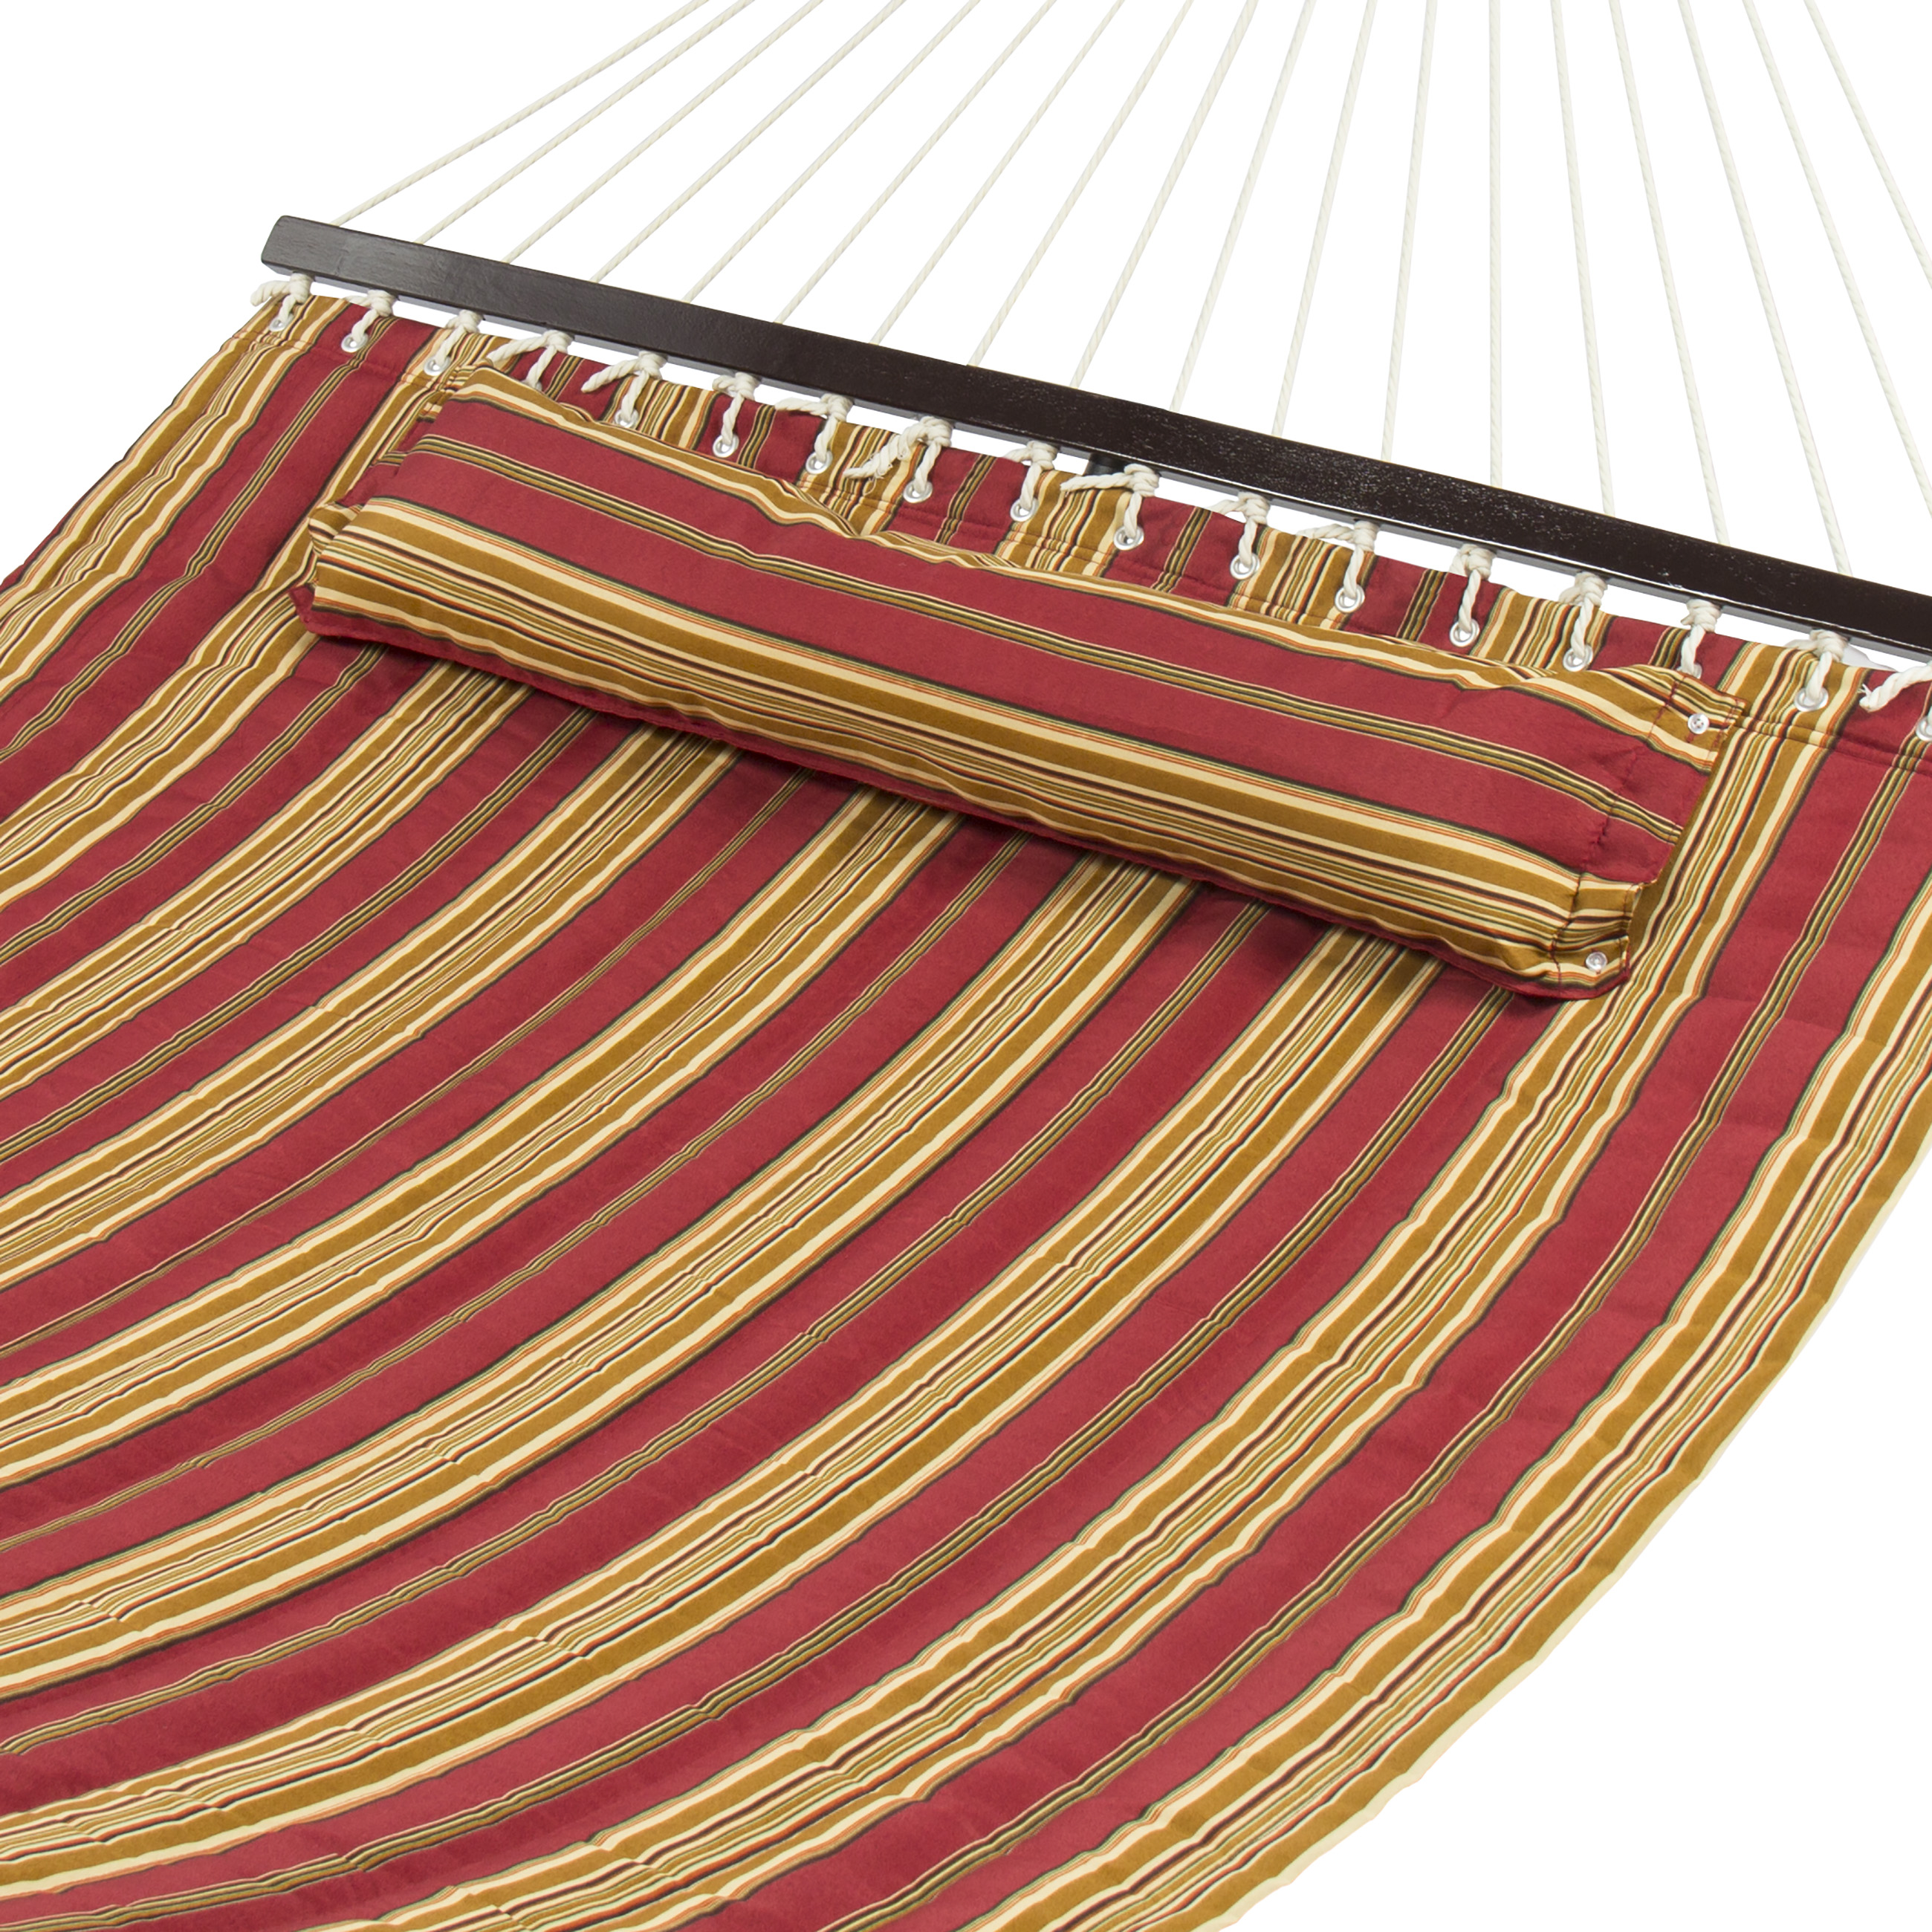 Best Choice Products Quilted Double Hammock w  Detachable Pillow, Spreader Bar Burgundy and Tan Stripe by